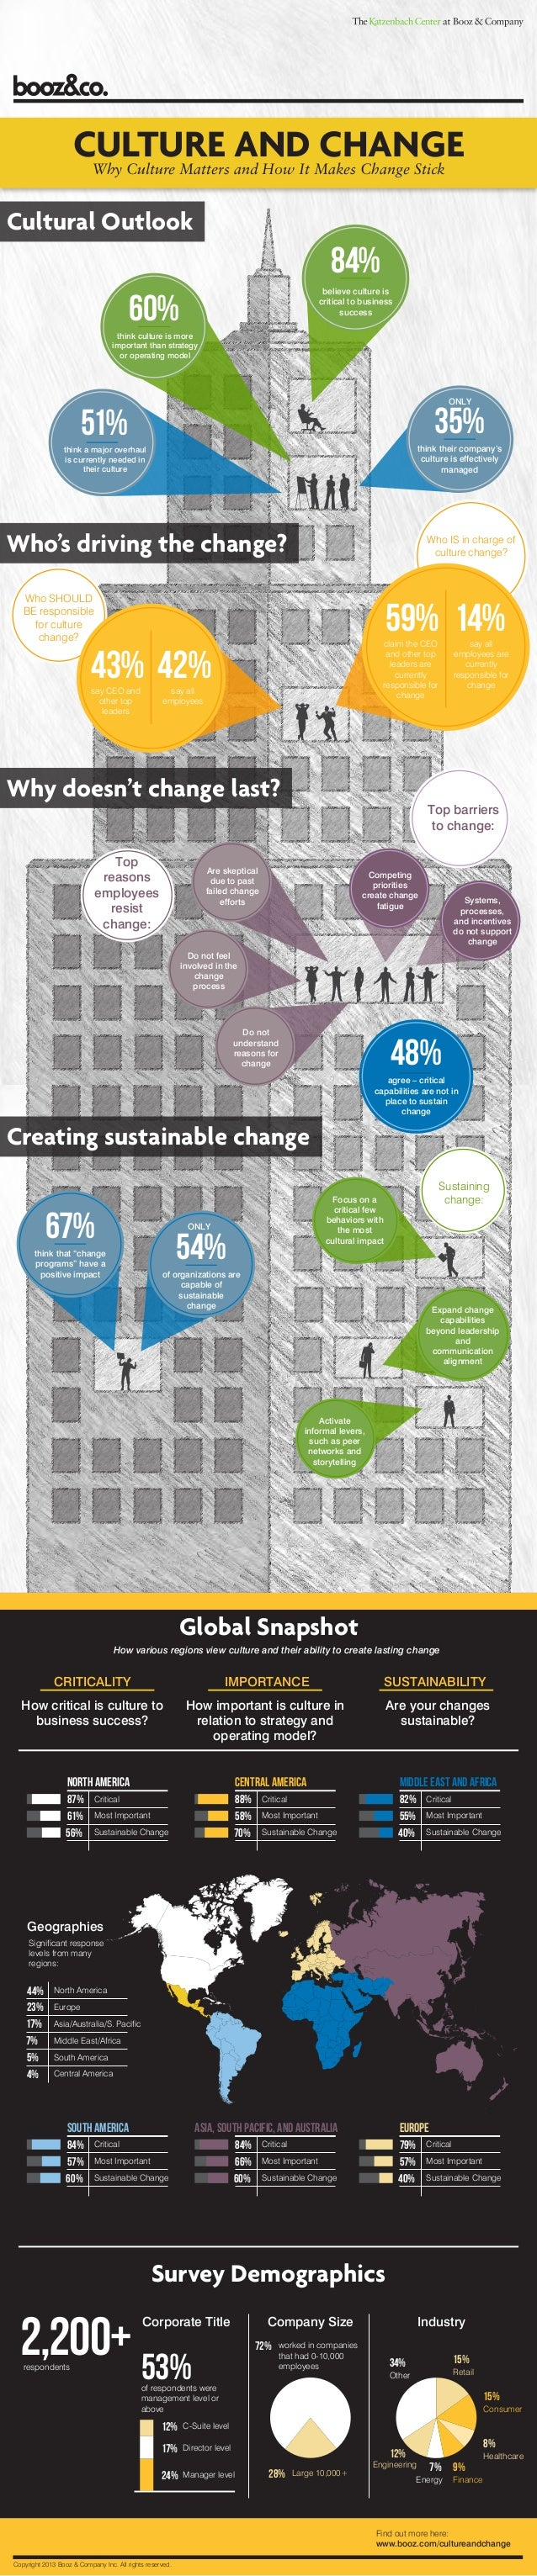 CULTURE AND CHANGE Why Culture Matters and How It Makes Change Stick  Cultural Outlook  84% believe culture is critical to...